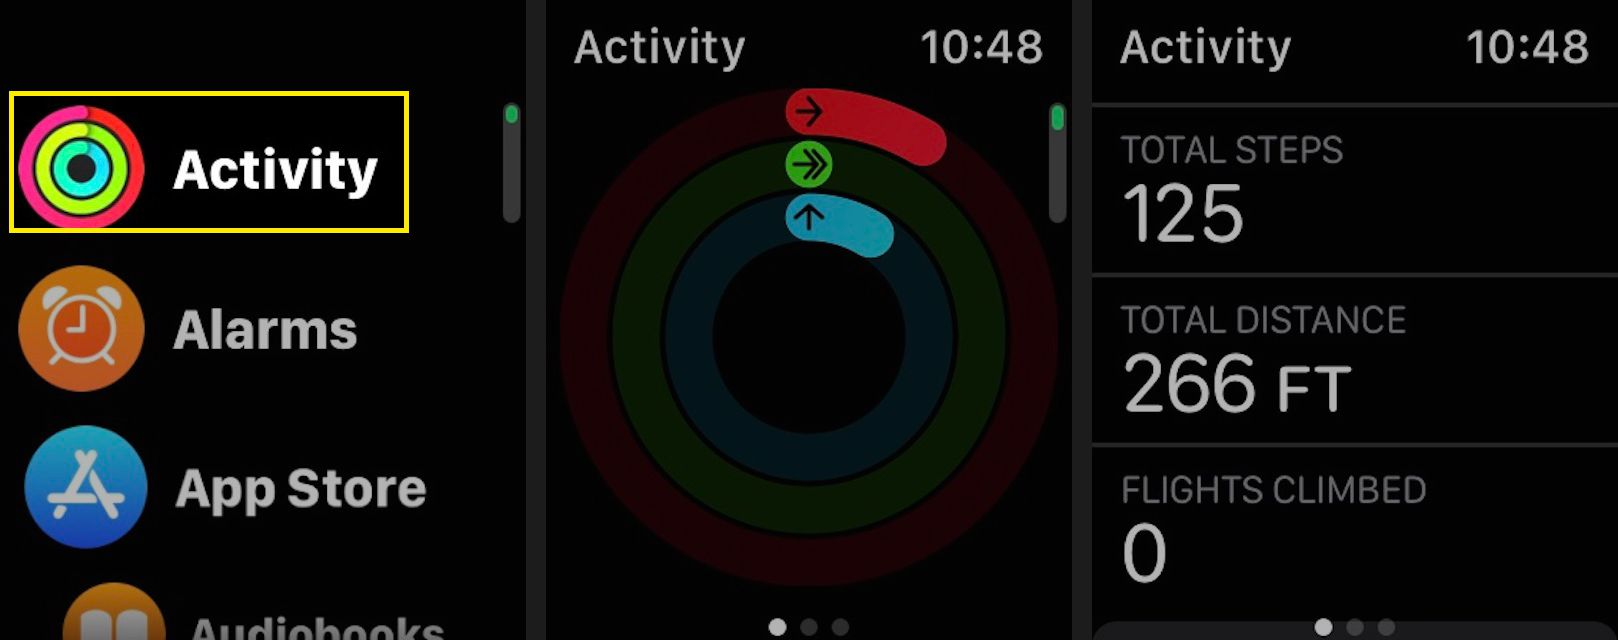 To check your current step and stair-climbing count, launch the Activity app on your Apple Watch, then scroll down to view your current total steps, total distance, and flights climbed.